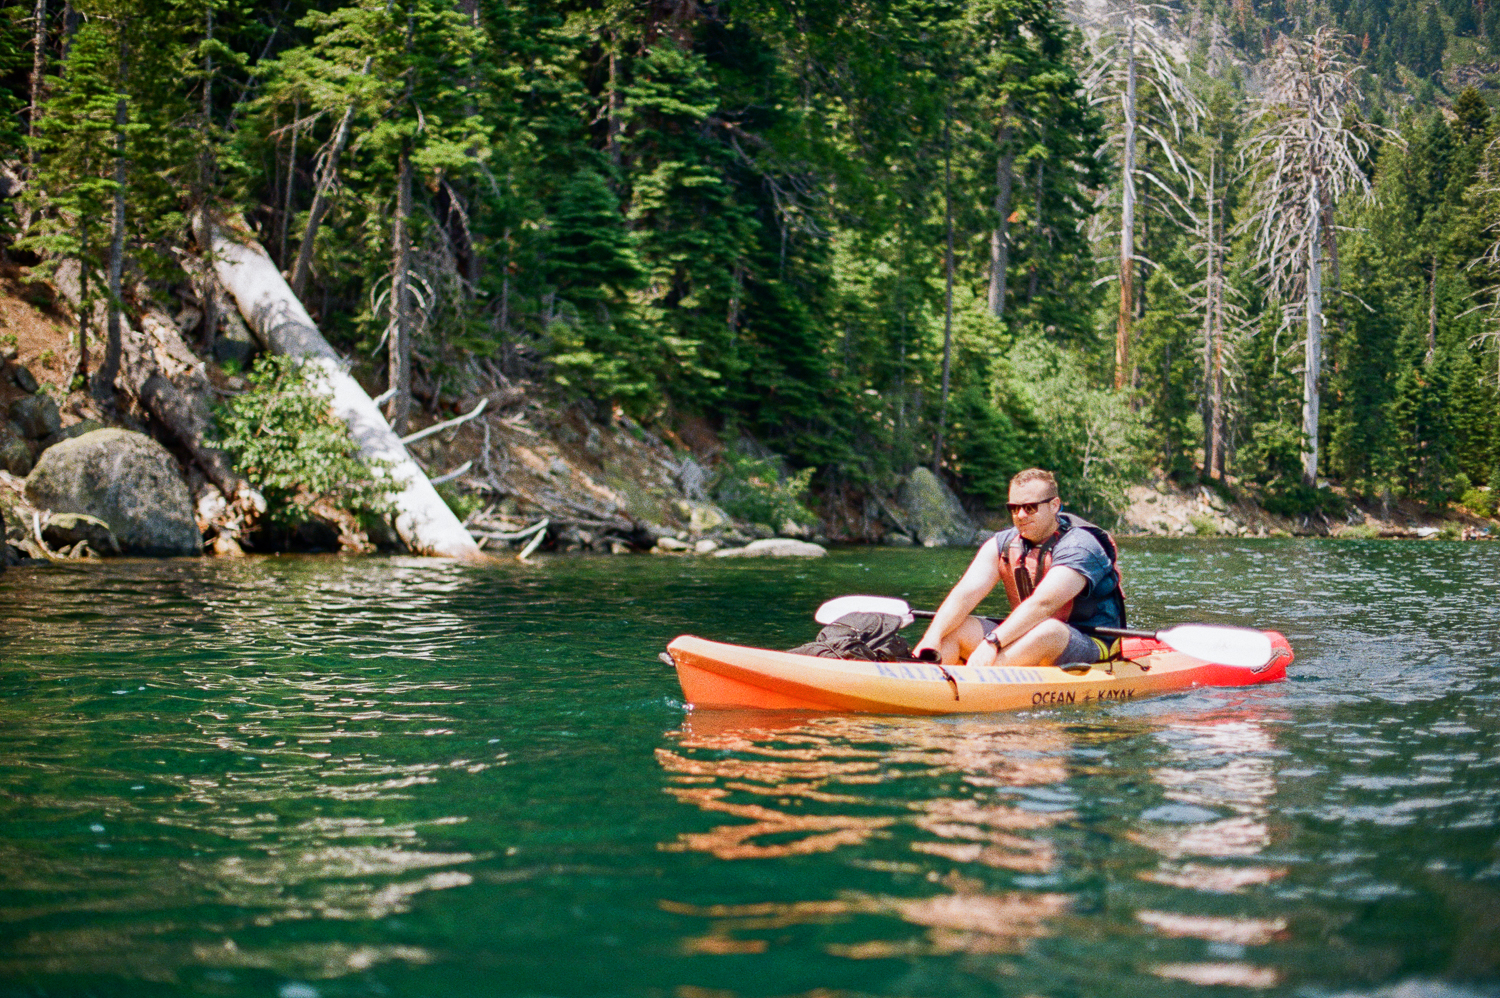 South Lake Tahoe Vacation at Emerald Bay & Eagle Falls | Tahoe Lifestyle Photographer